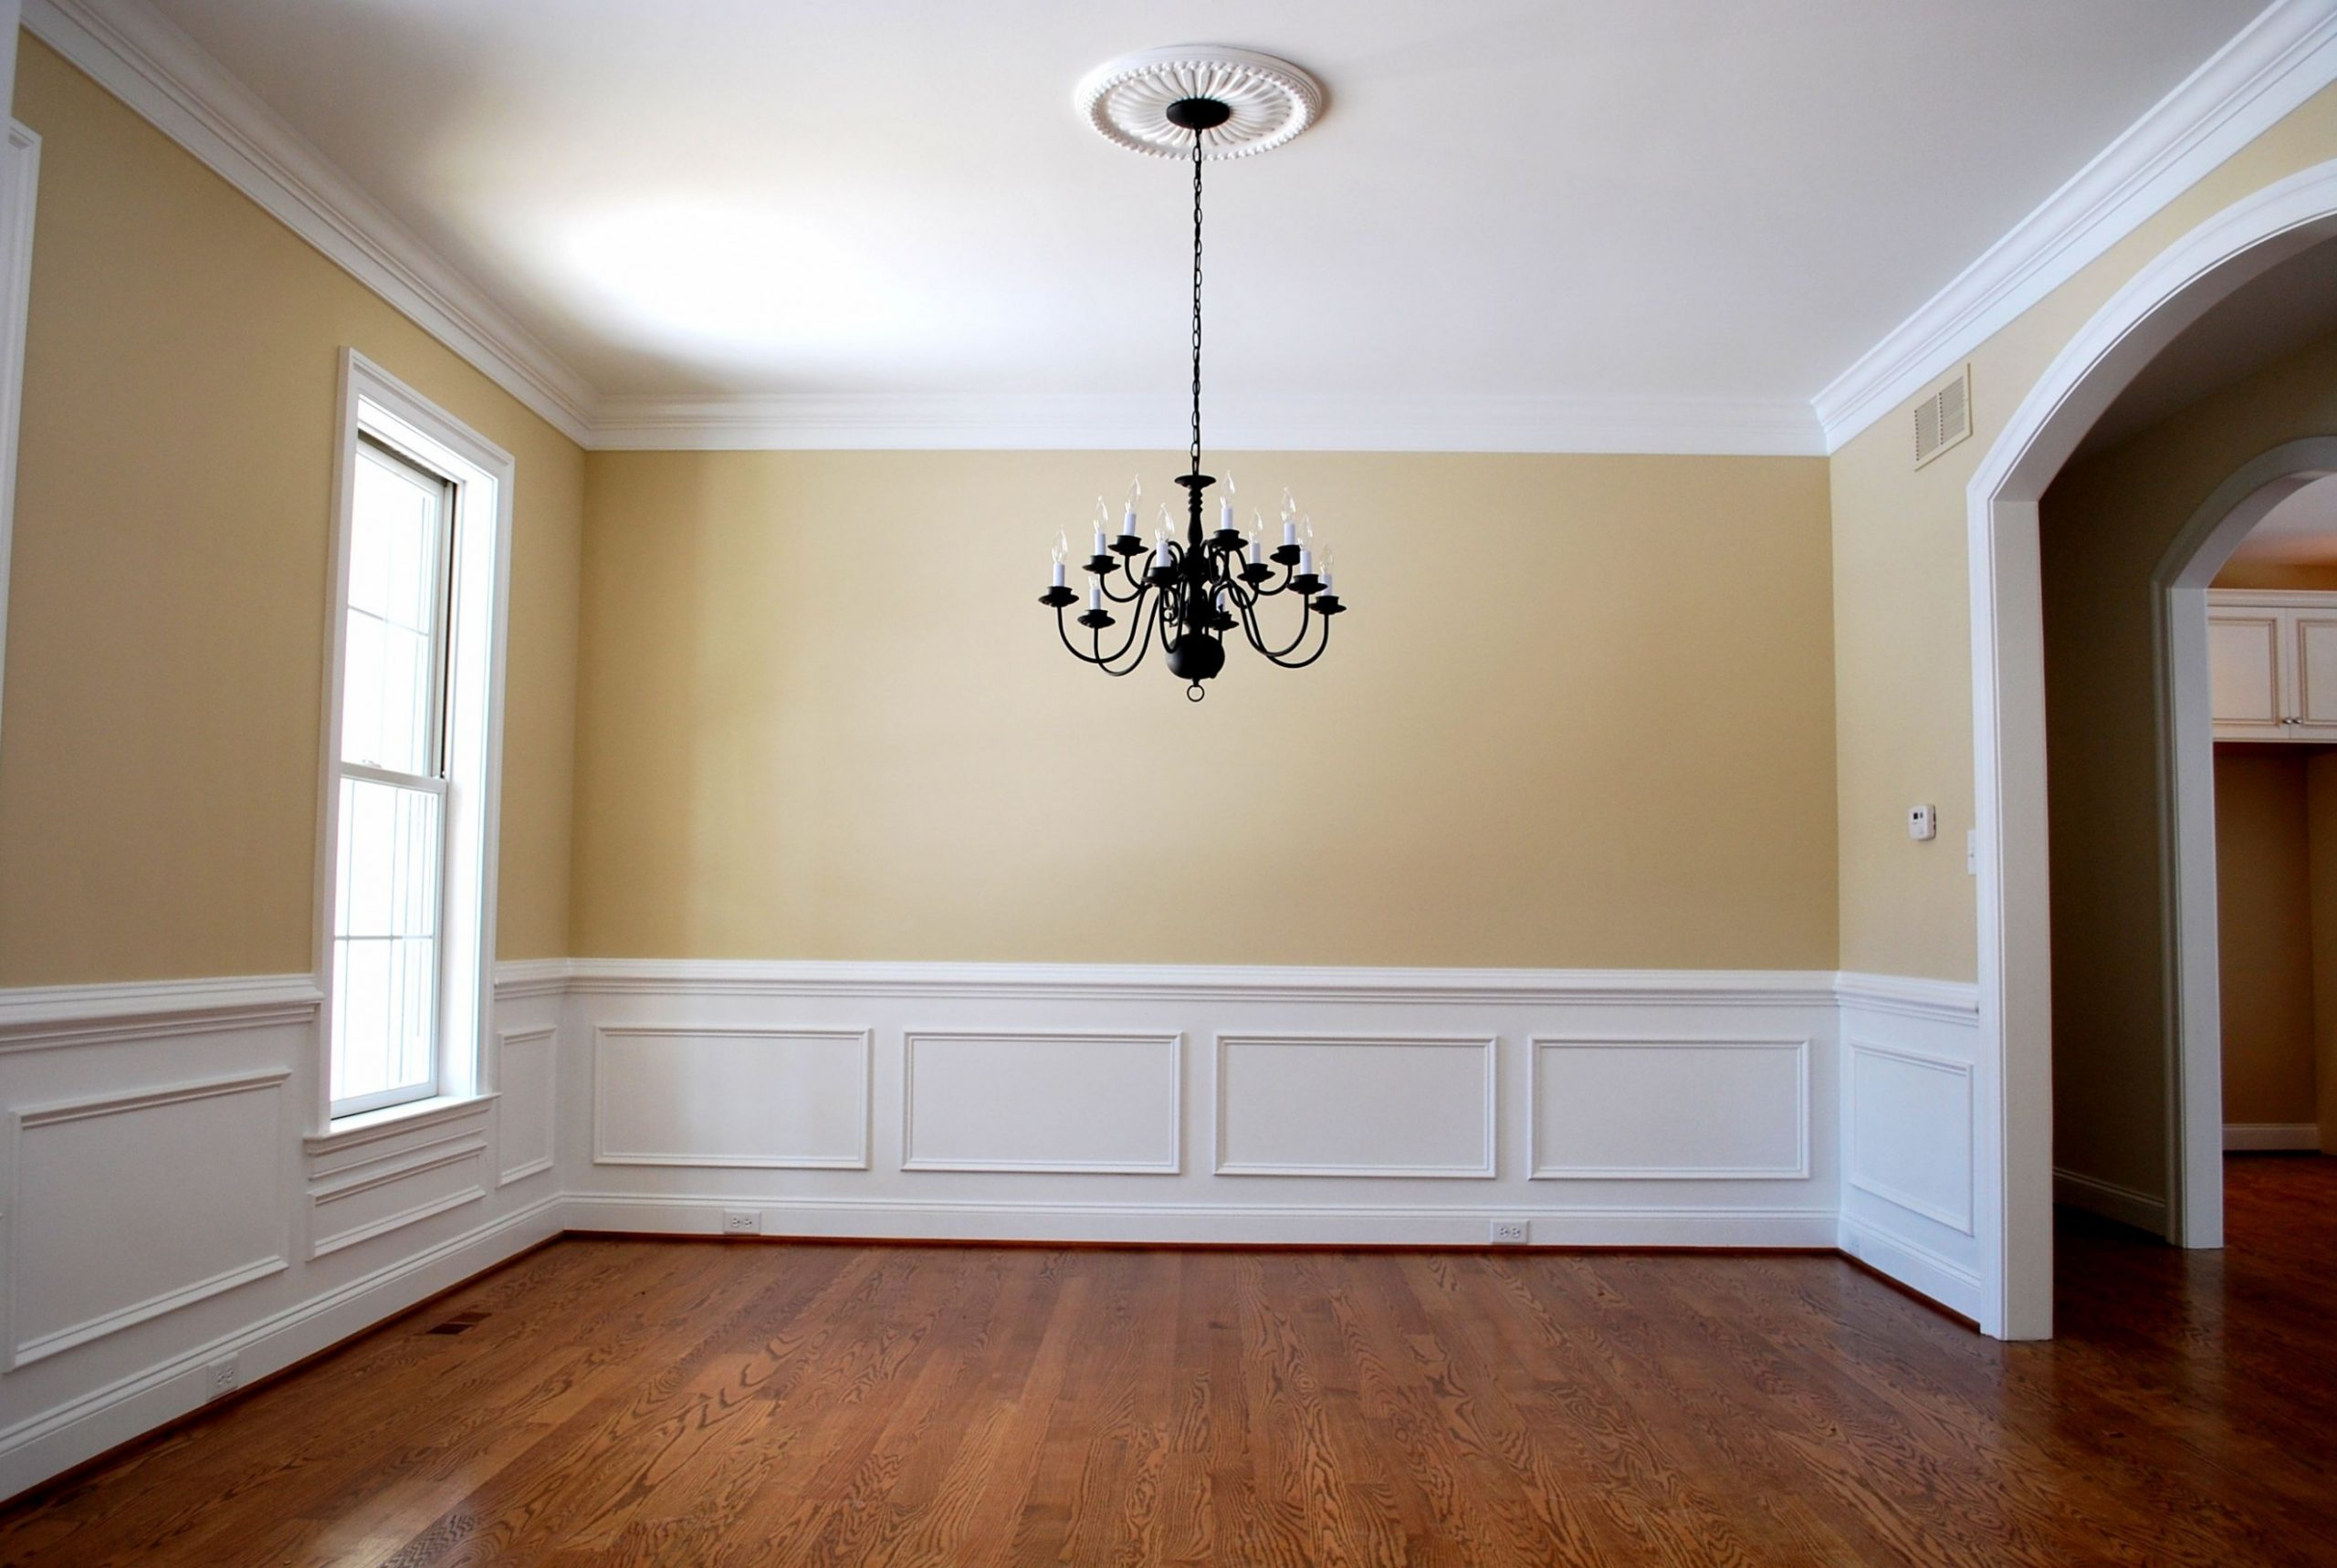 Pin by Ortner Group on Dining Rooms  Dining room wainscoting  - Dining Room Moulding Ideas